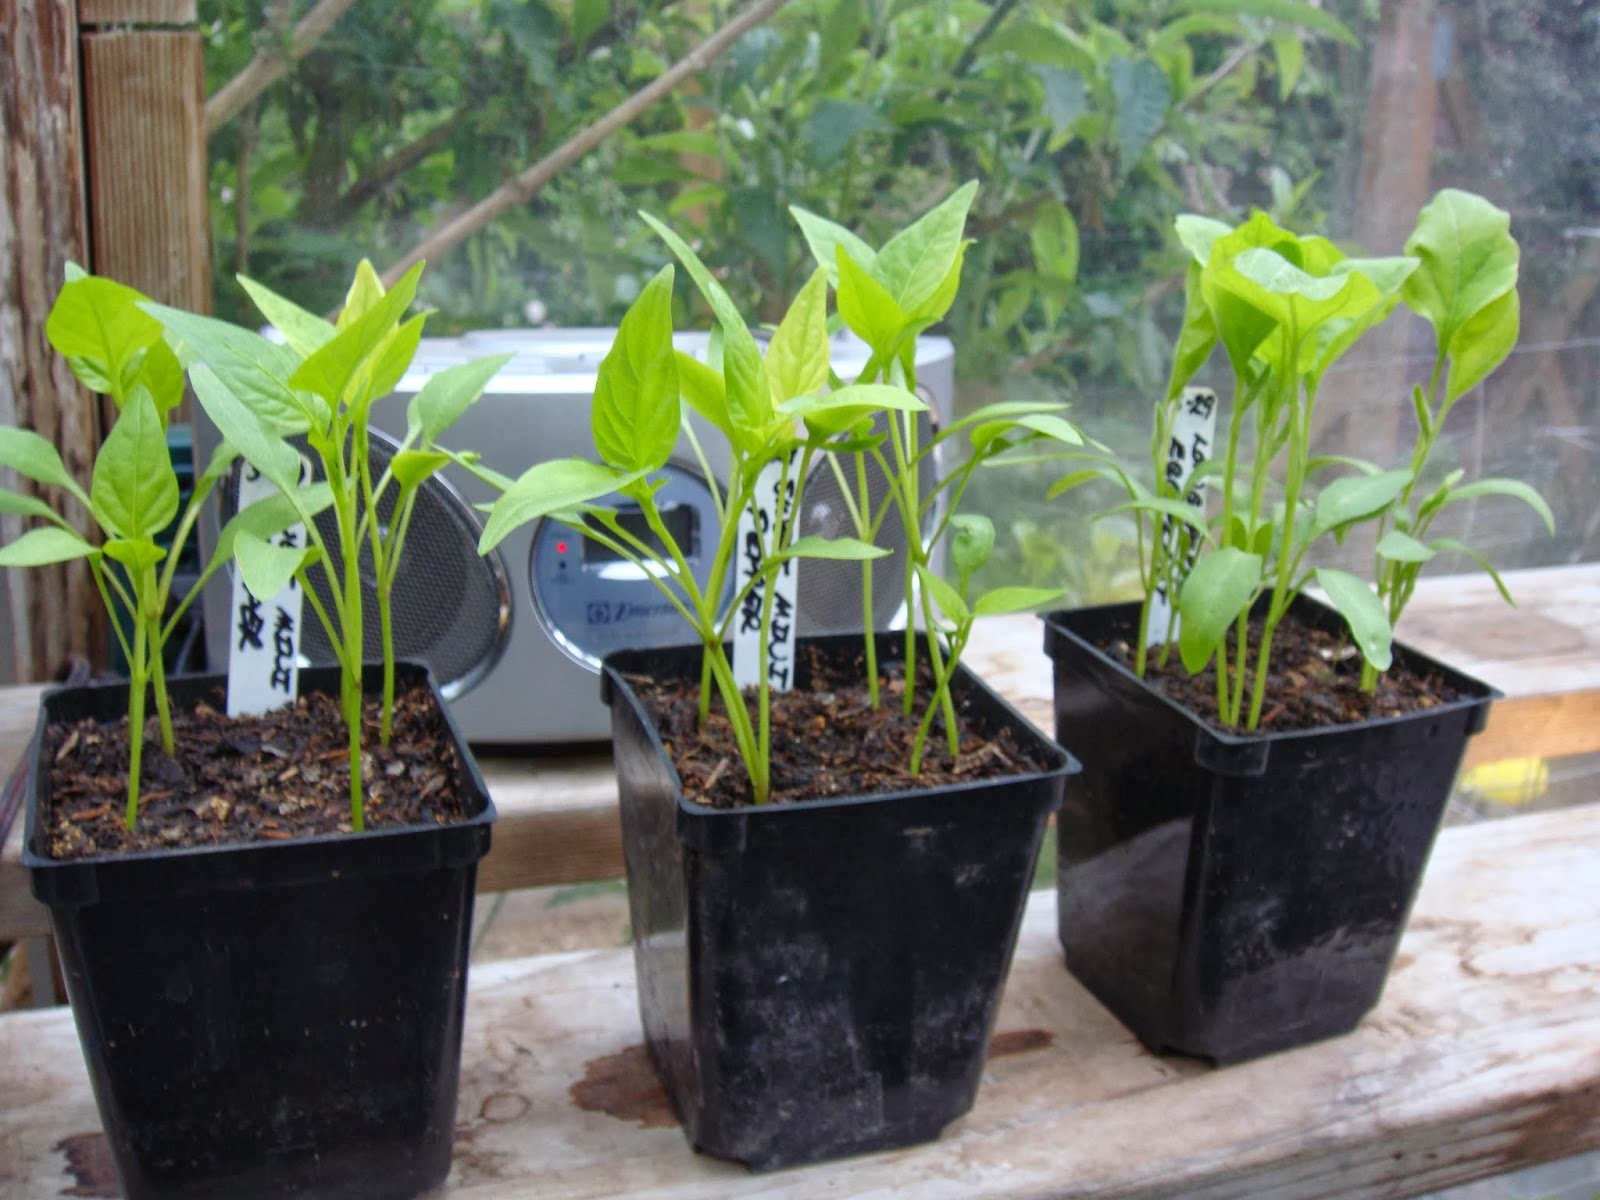 Pepper Seedlings Started in The Garden Oracle's Greenhouse.  The Pepper Plants in This Photo are About Four Weeks Old from the Date of Sowing, and are Ready to be Thinned, Divided and Potted Up into Individual Three Inch Pots with The Plants Set a Bit Deeper in the New Pots.  They Were Sown with Four Clusters of Three Seeds Each in Three Inch Pots.  After Growing on for a Few More Weeks they Will be Ready for Planting Out with The Plants Set a Bit Deeper in the Ground than in The Pots to Encourage a Larger Root System, or They can be Up-Potted into Large Pots at that Point for Greenhouse Culture.  Make Sure to Check Out the Large Assortment of Both Hot and Sweet Pepper Seeds Available Through the Vegetable Seeds Tab at the Top of this Site.